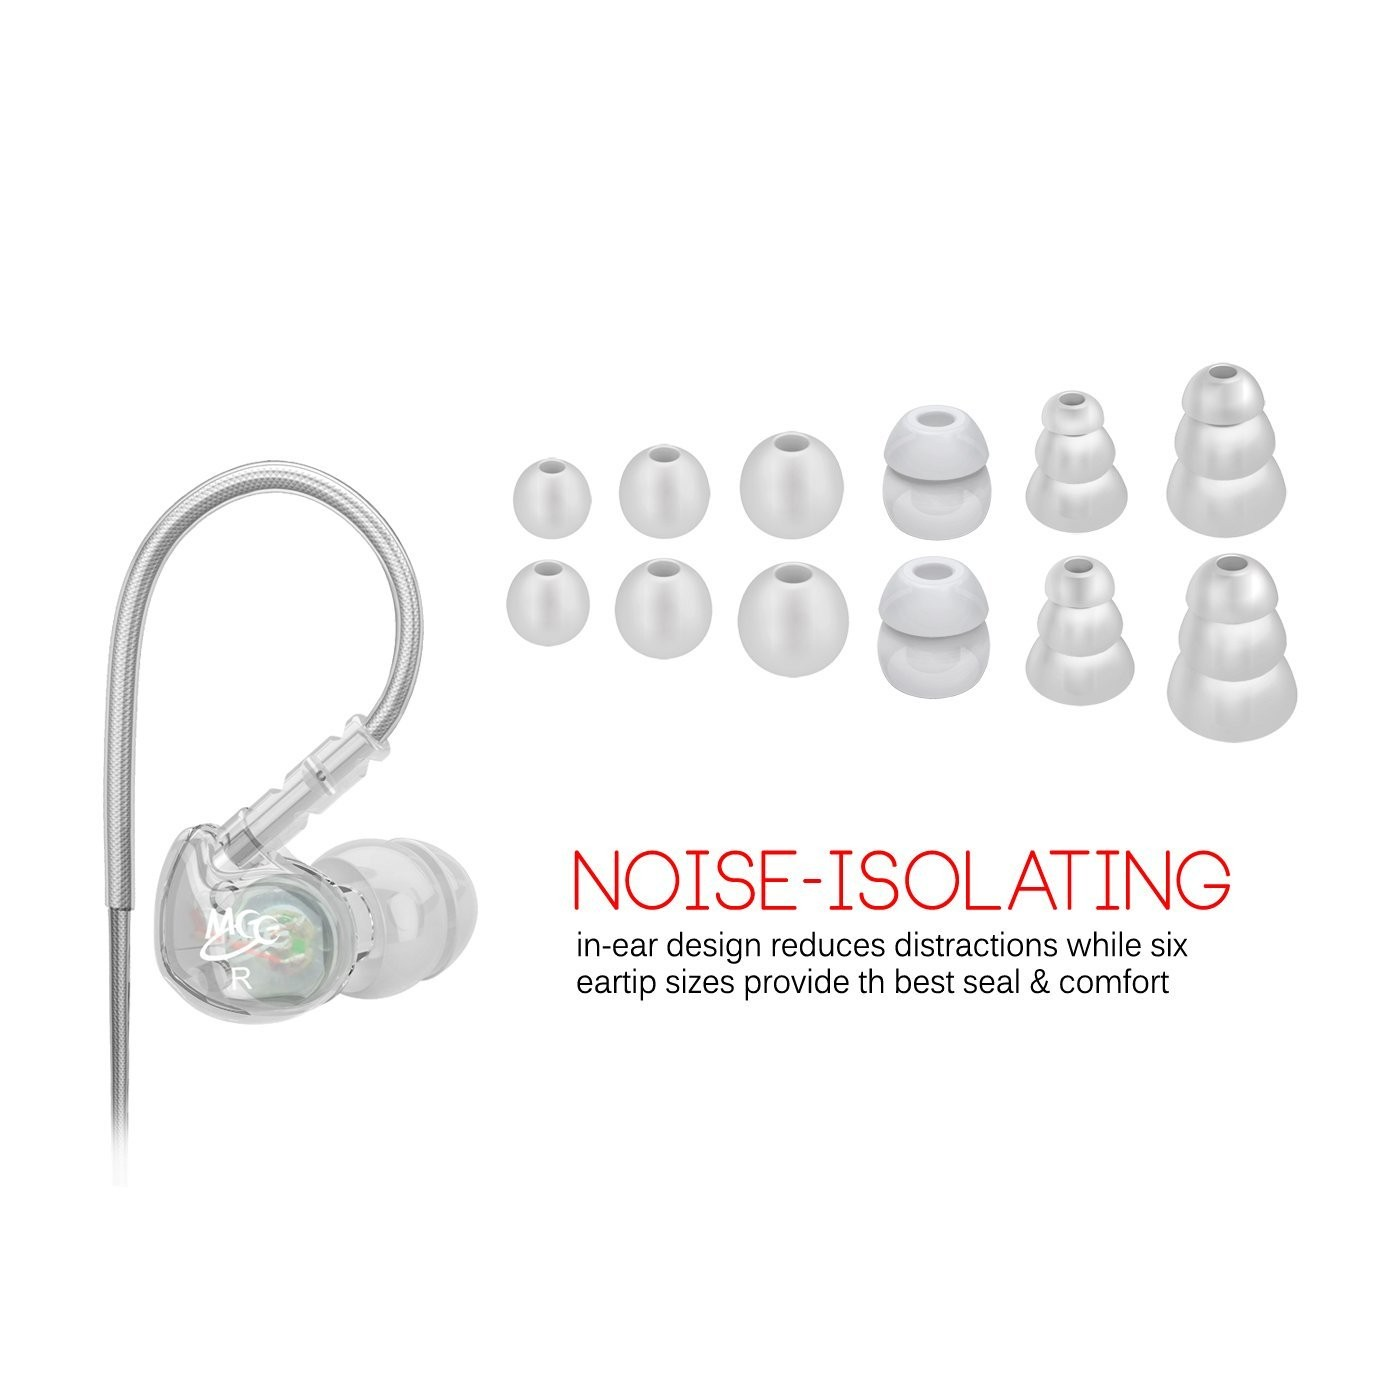 MEE Audio Sport-Fi M6 Noise Isolating In-Ear Headphones with Memory Wire (Clear), B0038W0K2U